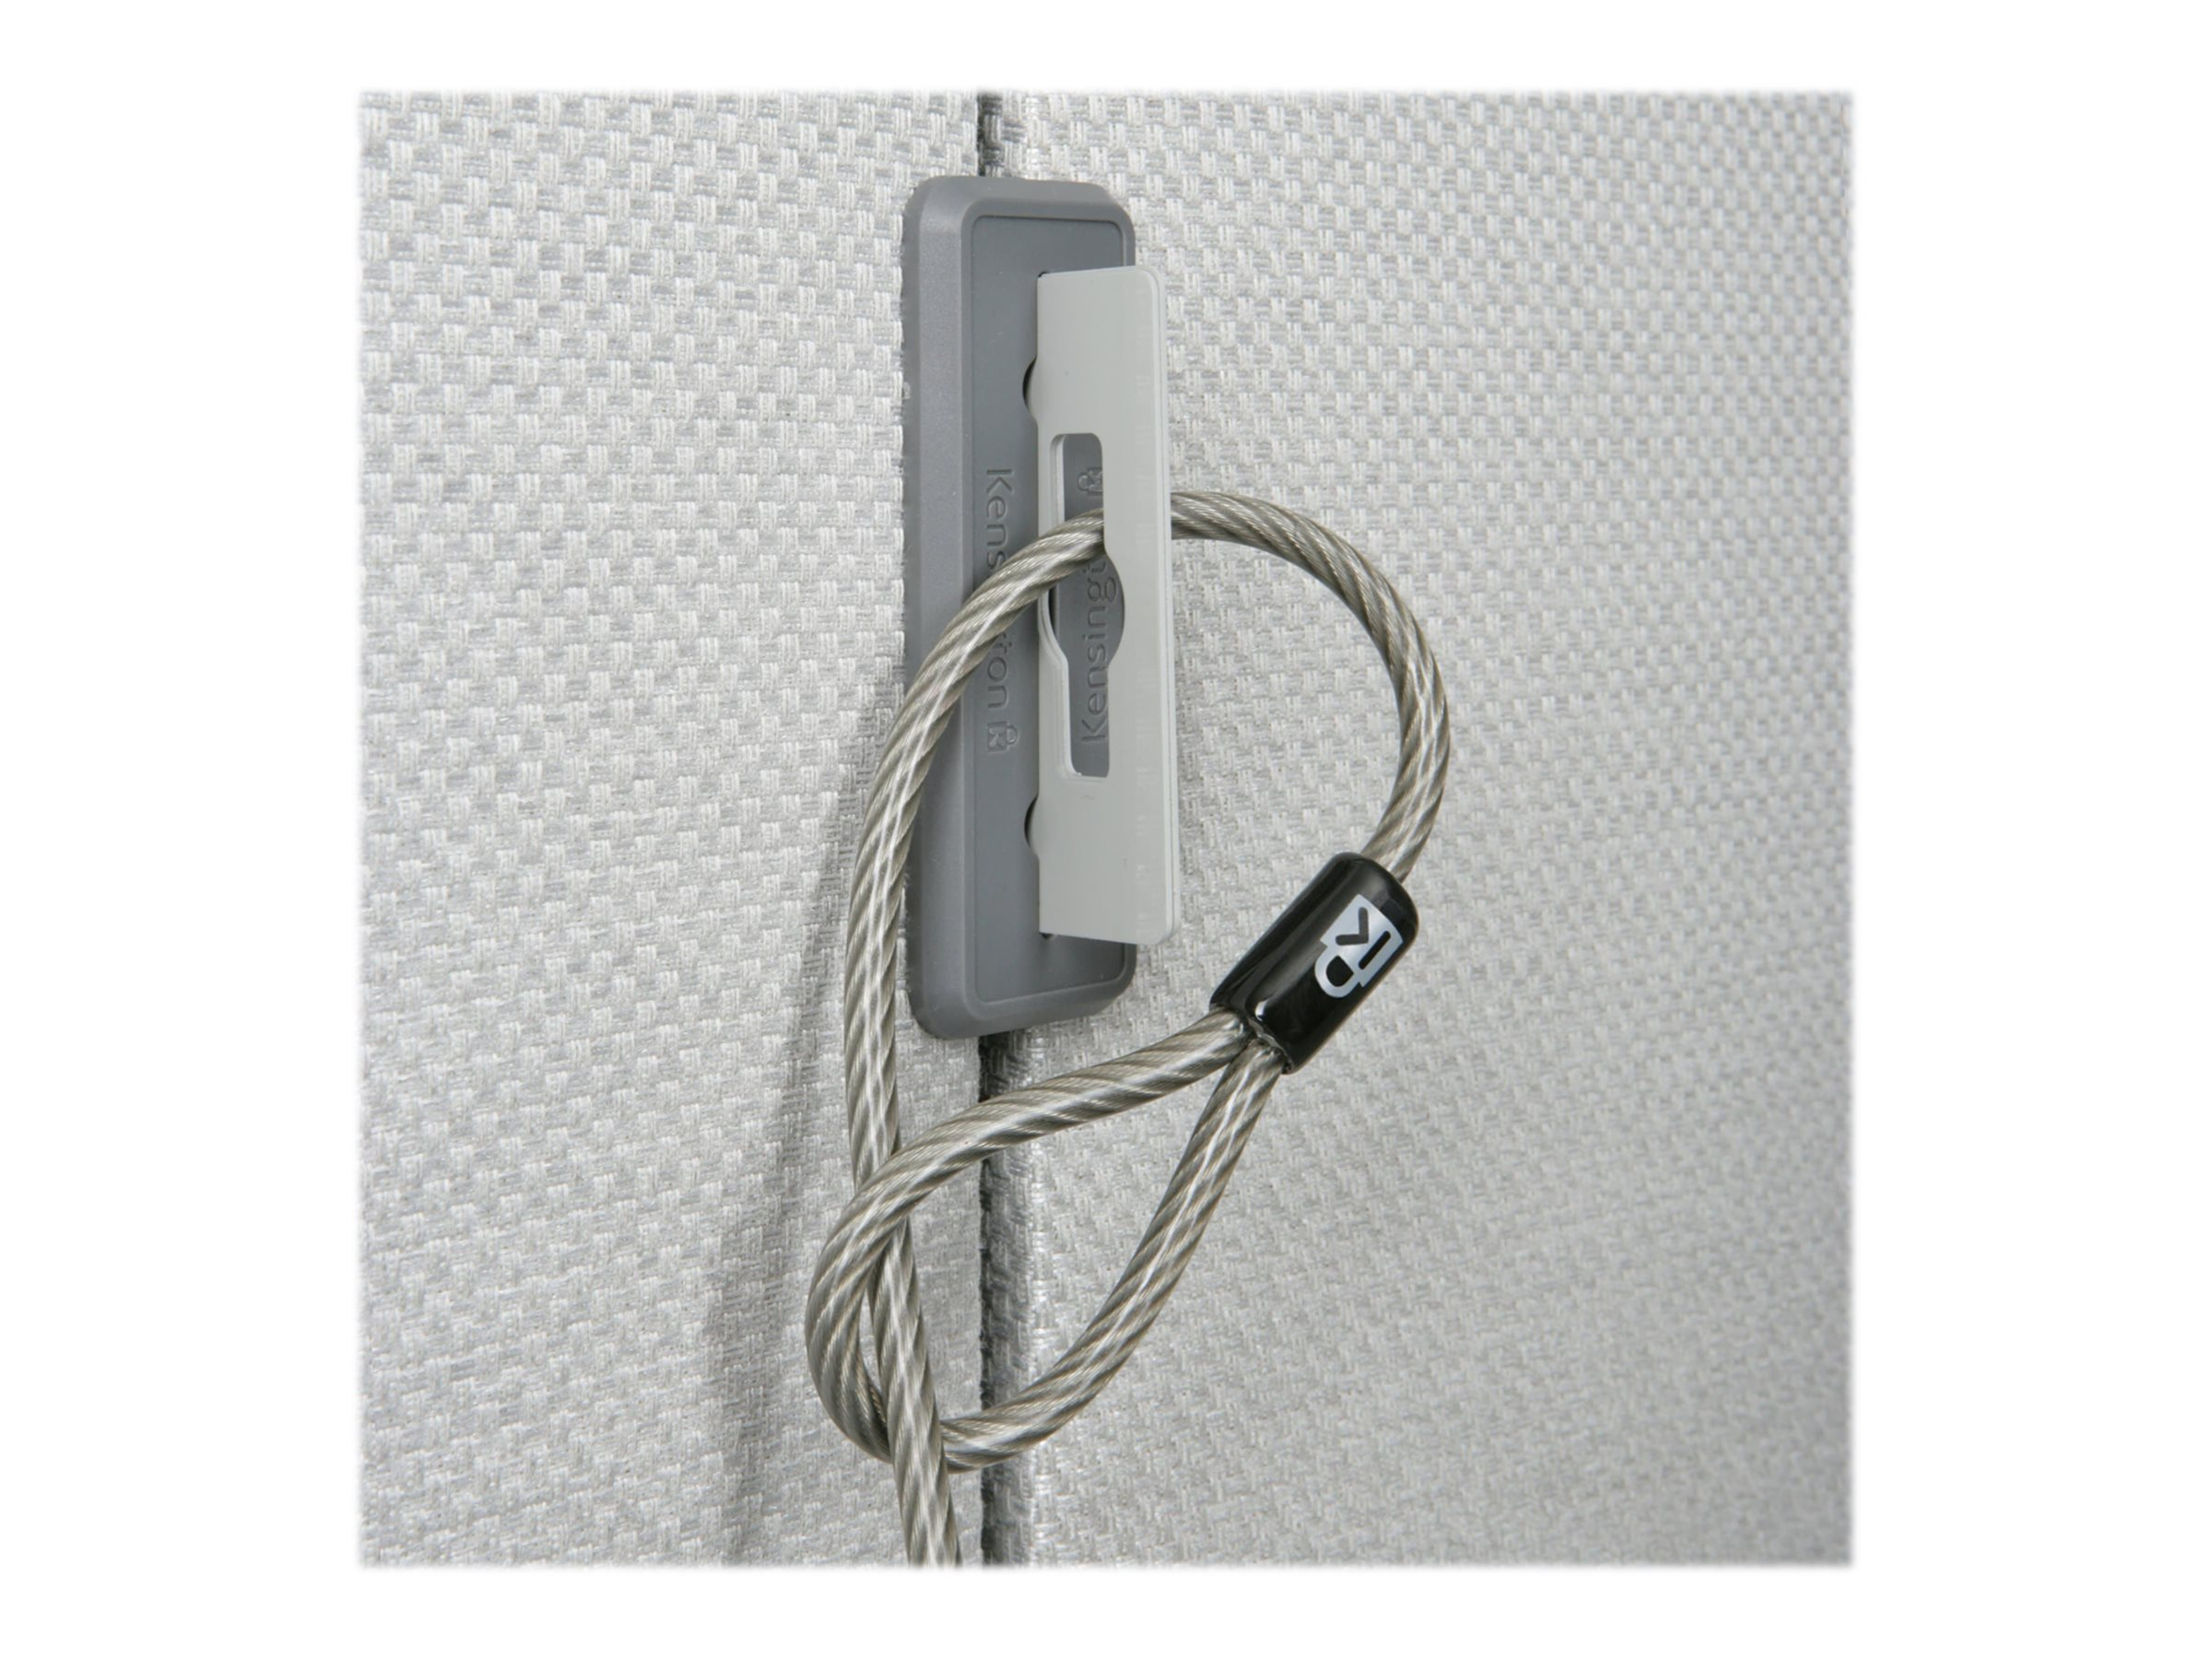 Kensington Partition Cable Anchor, K67700US, 9525815, Security Hardware